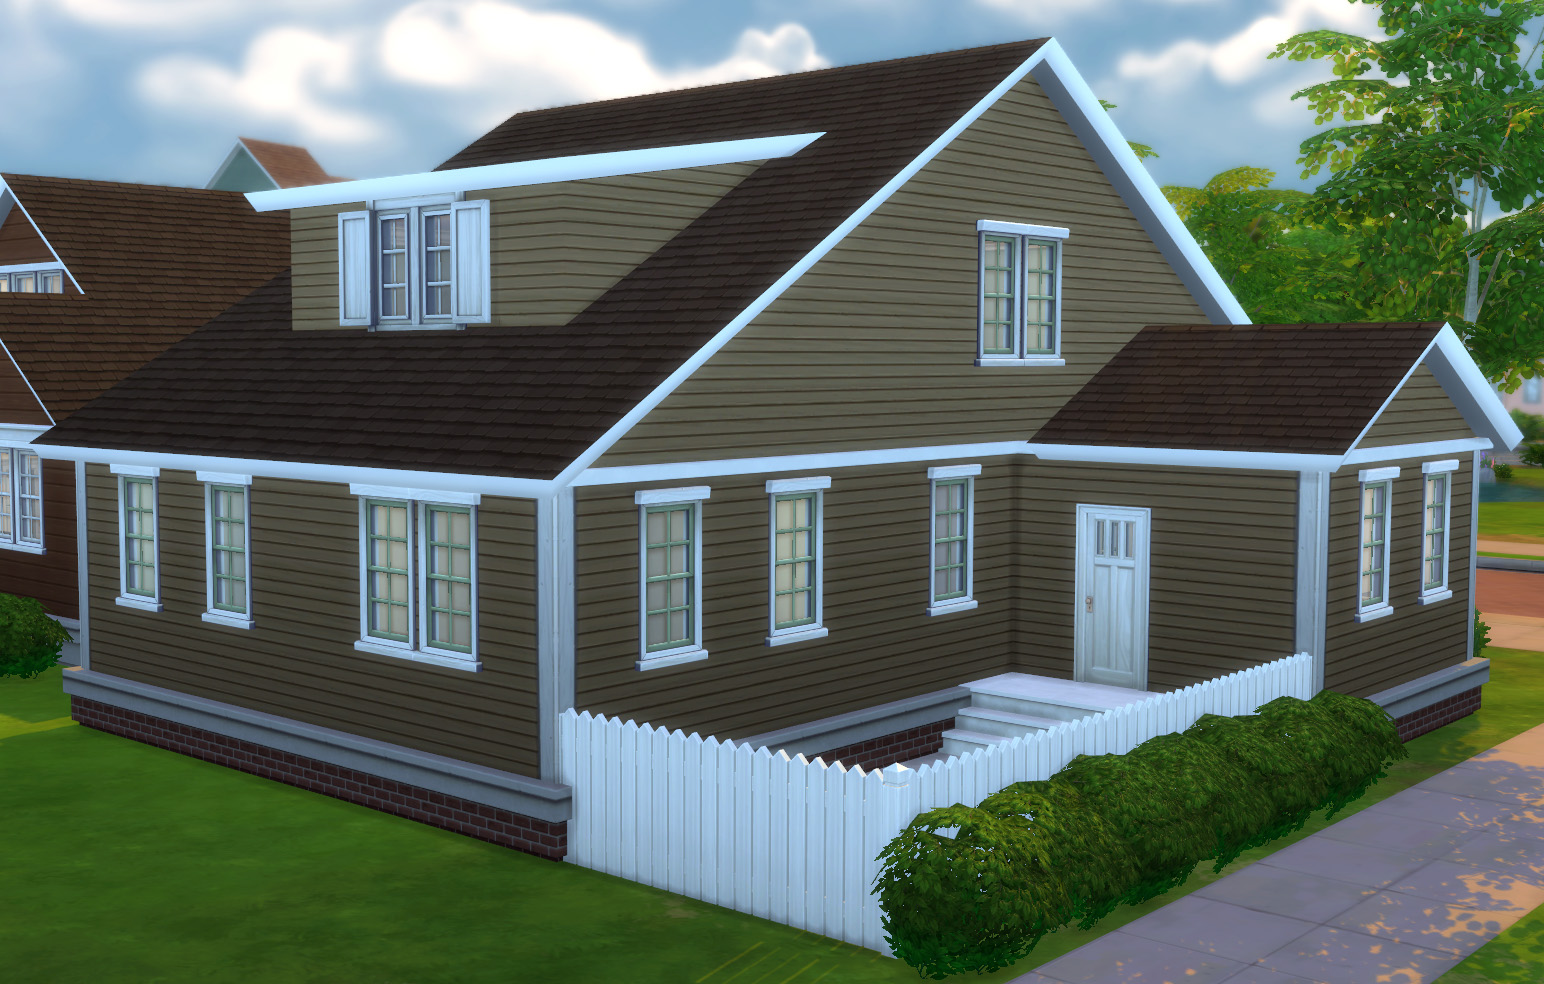 corinth chat rooms Email   chat  house plan 3596: corinth-2611 designed for contemporary family needs,  additional room features.